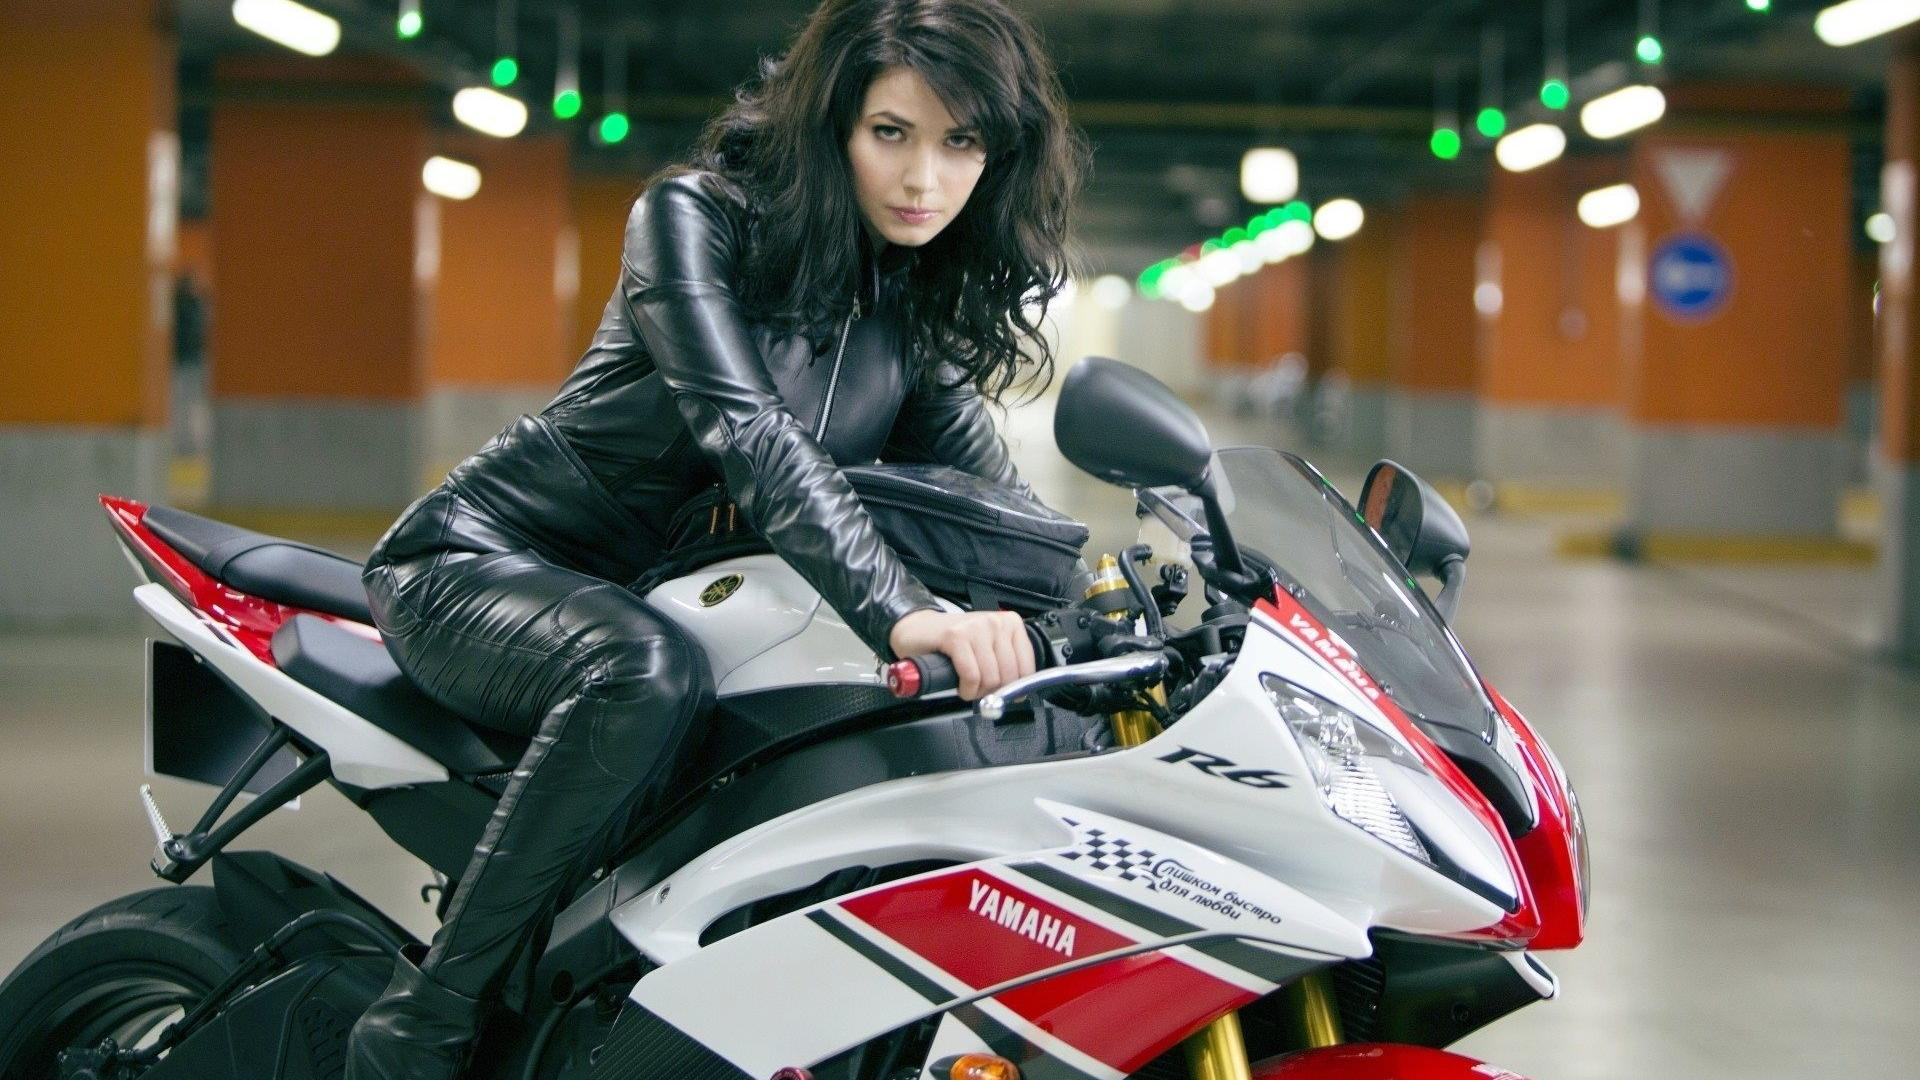 1920x1080 Girl and motorcycle wallpaper | (134191)